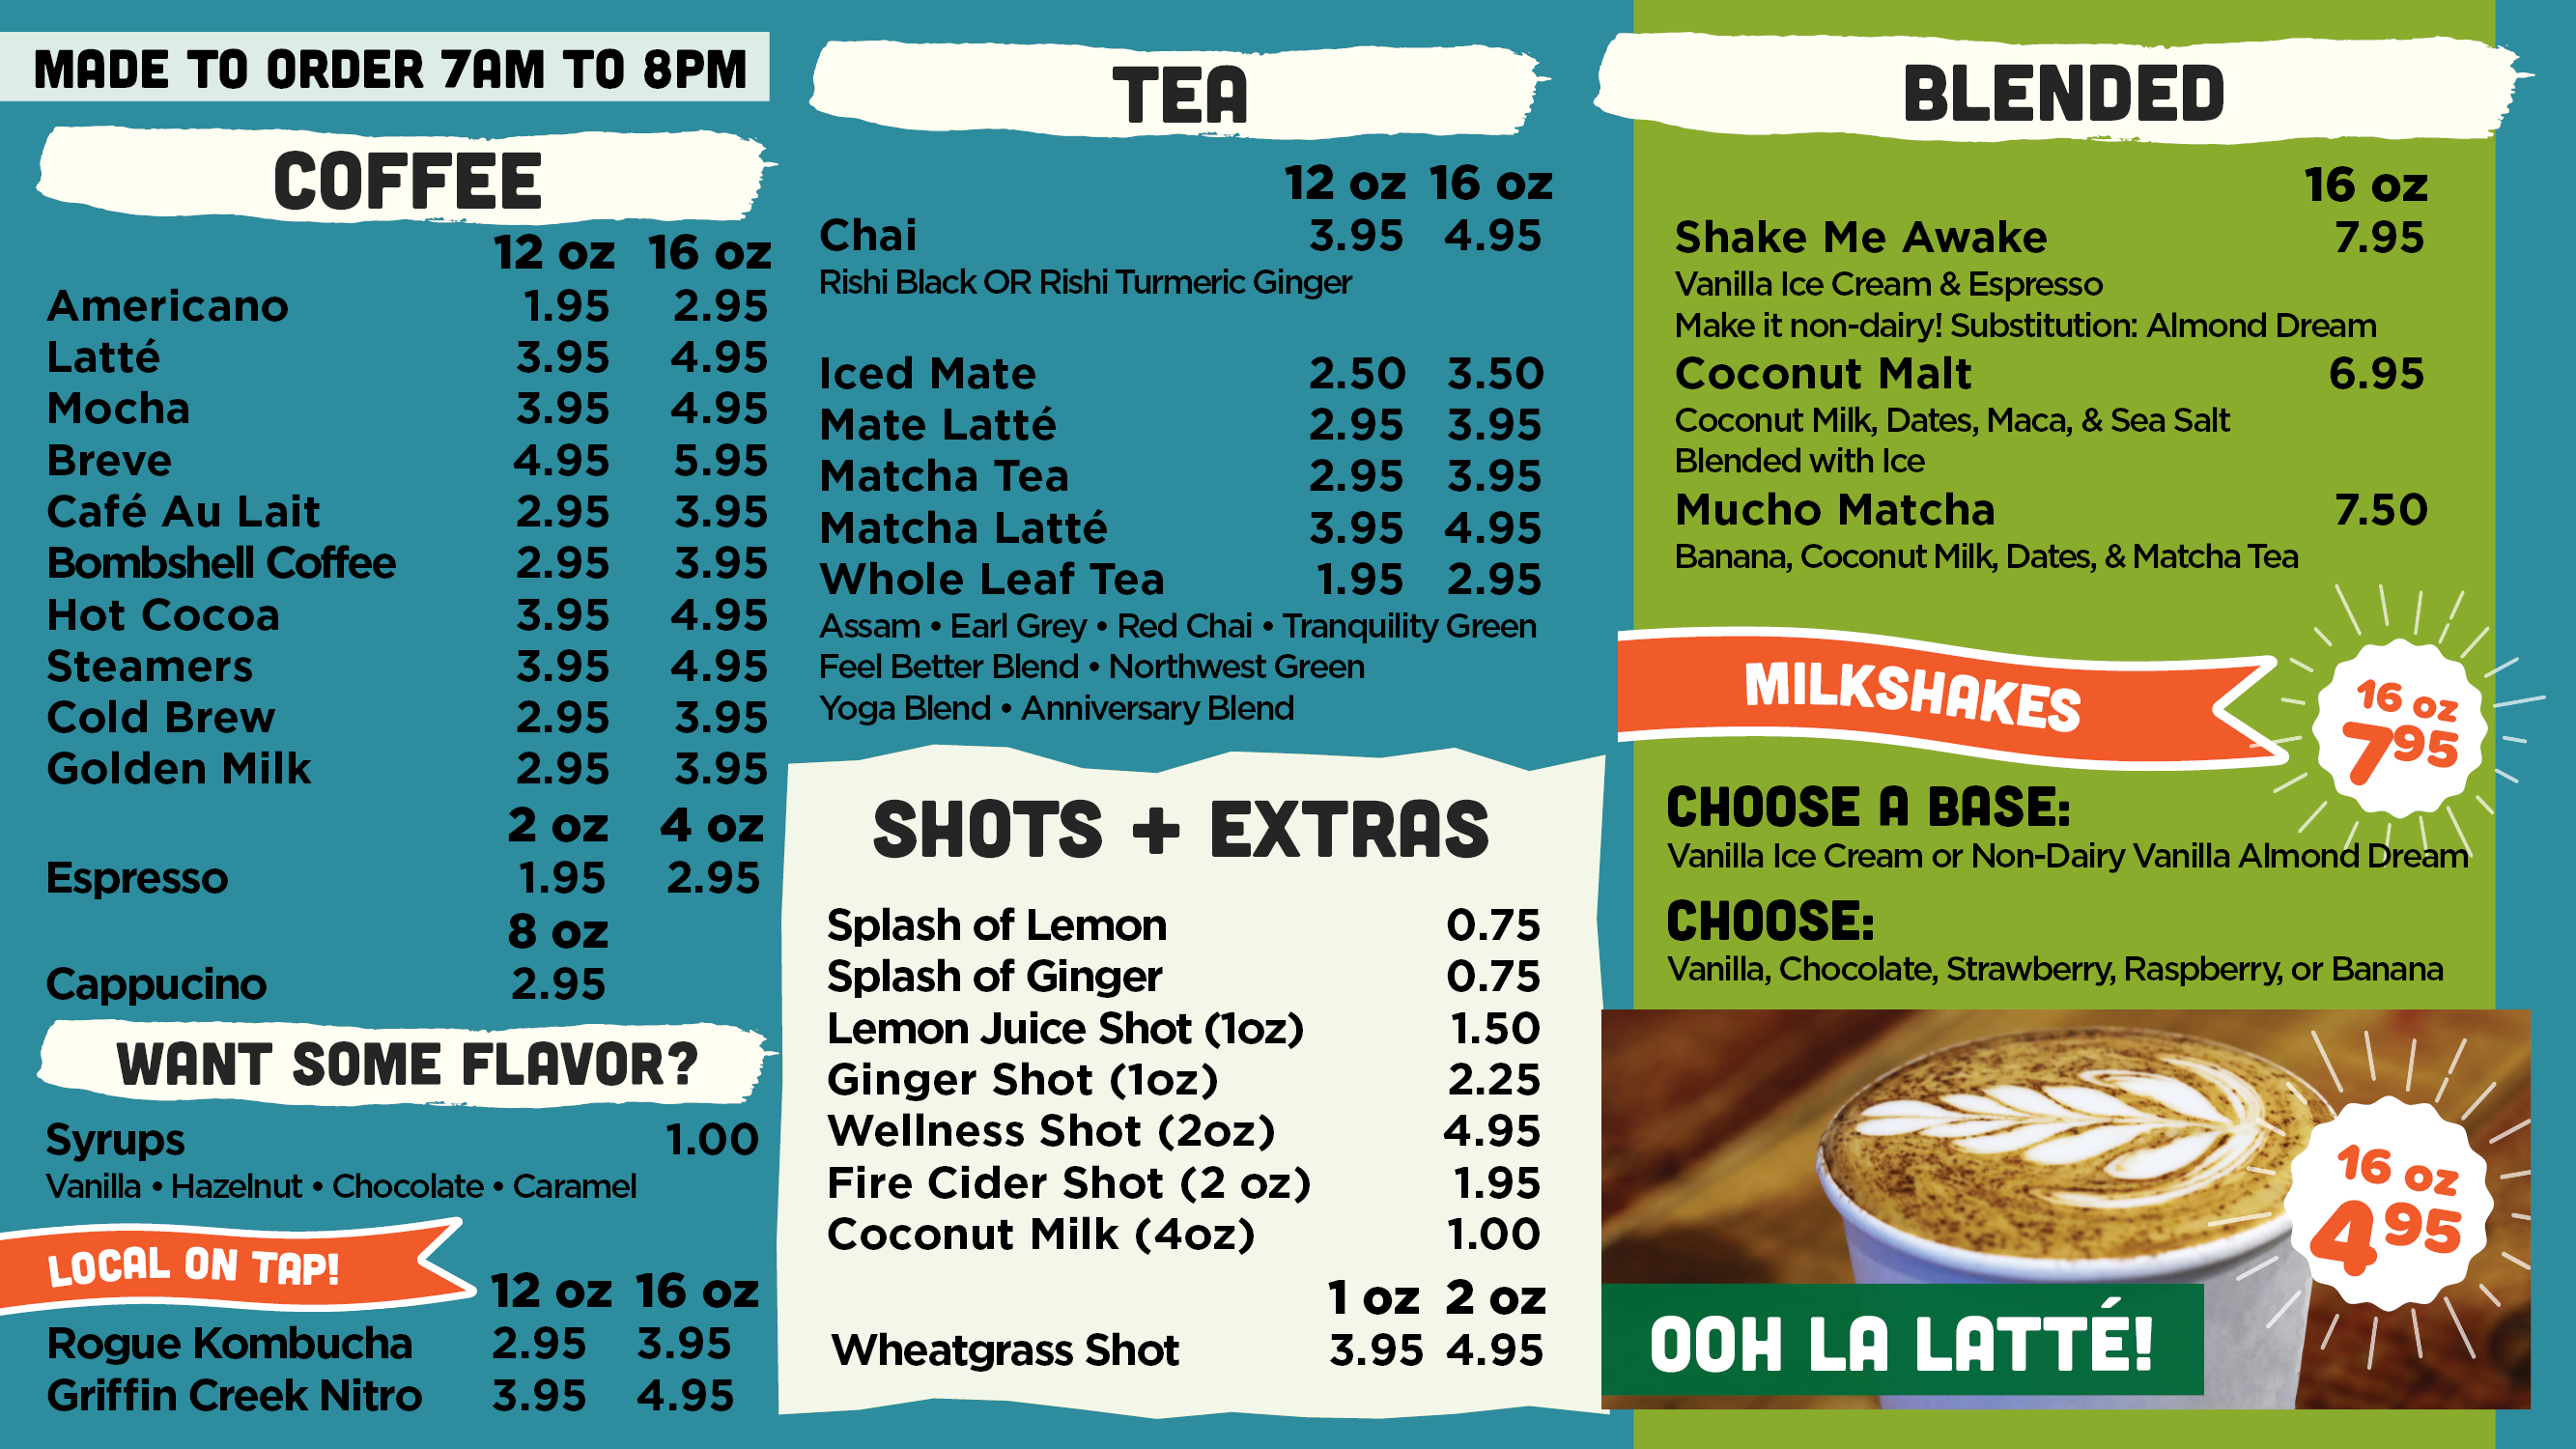 AFC Coffee Made to Order Menu